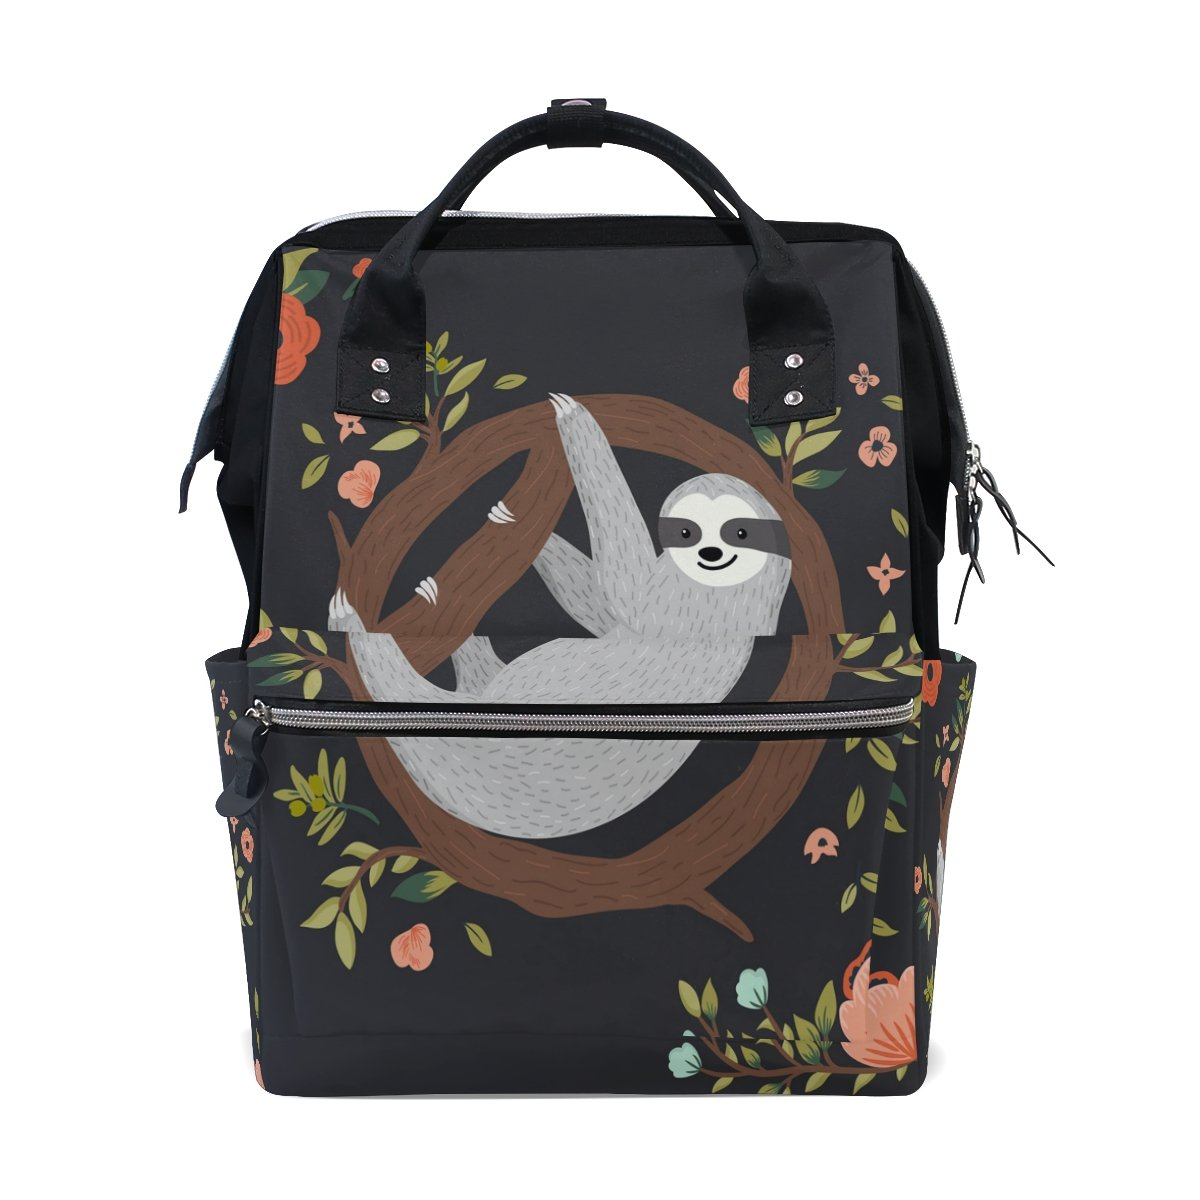 WOZO Cute Sloth Hanging on the Tree Flower Multi-function Diaper Bags Backpack Travel Bag